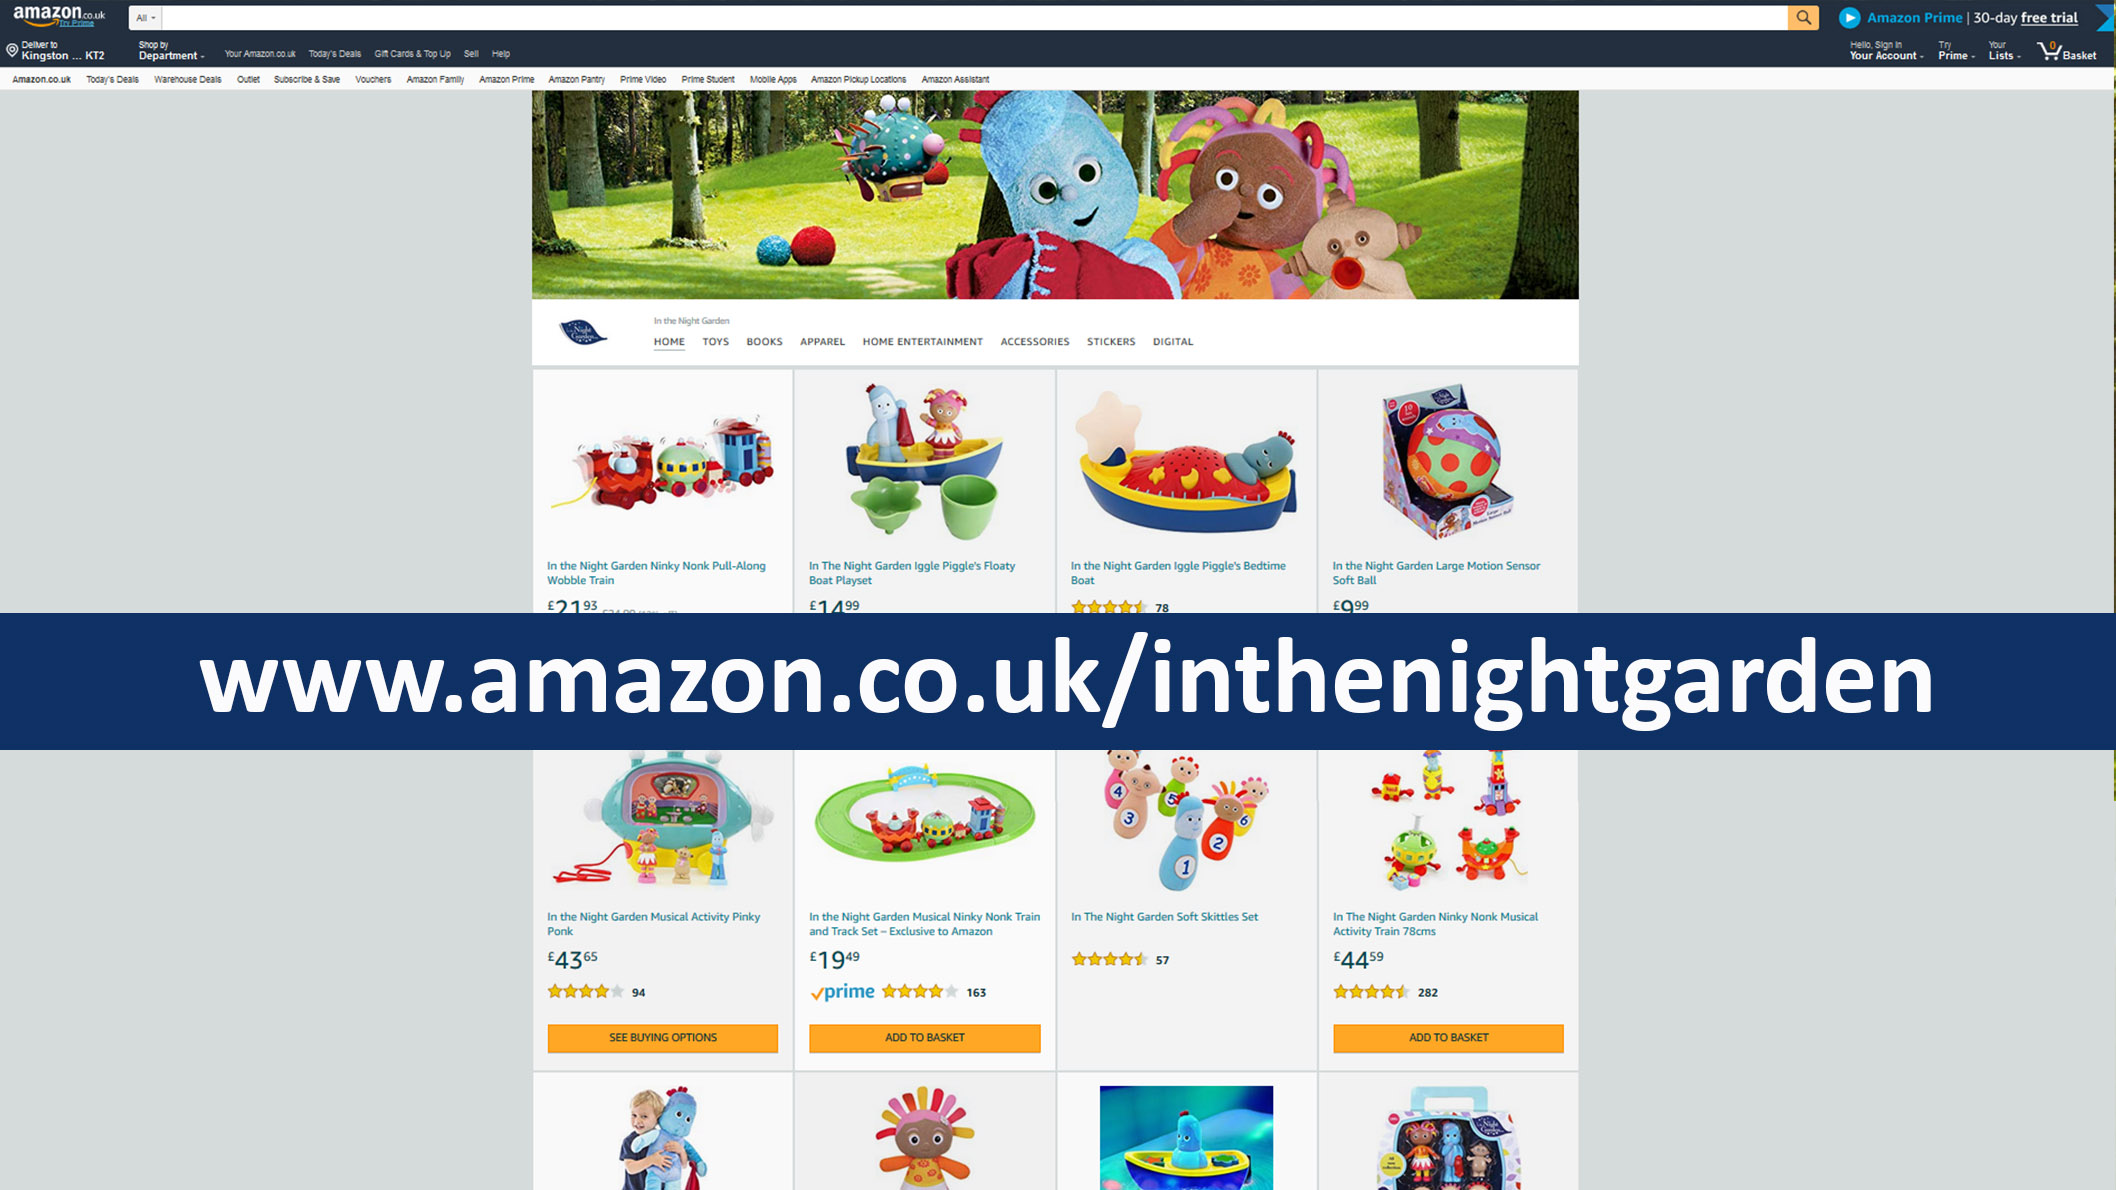 A website displaying children's toys with a URL link displayed across the page.